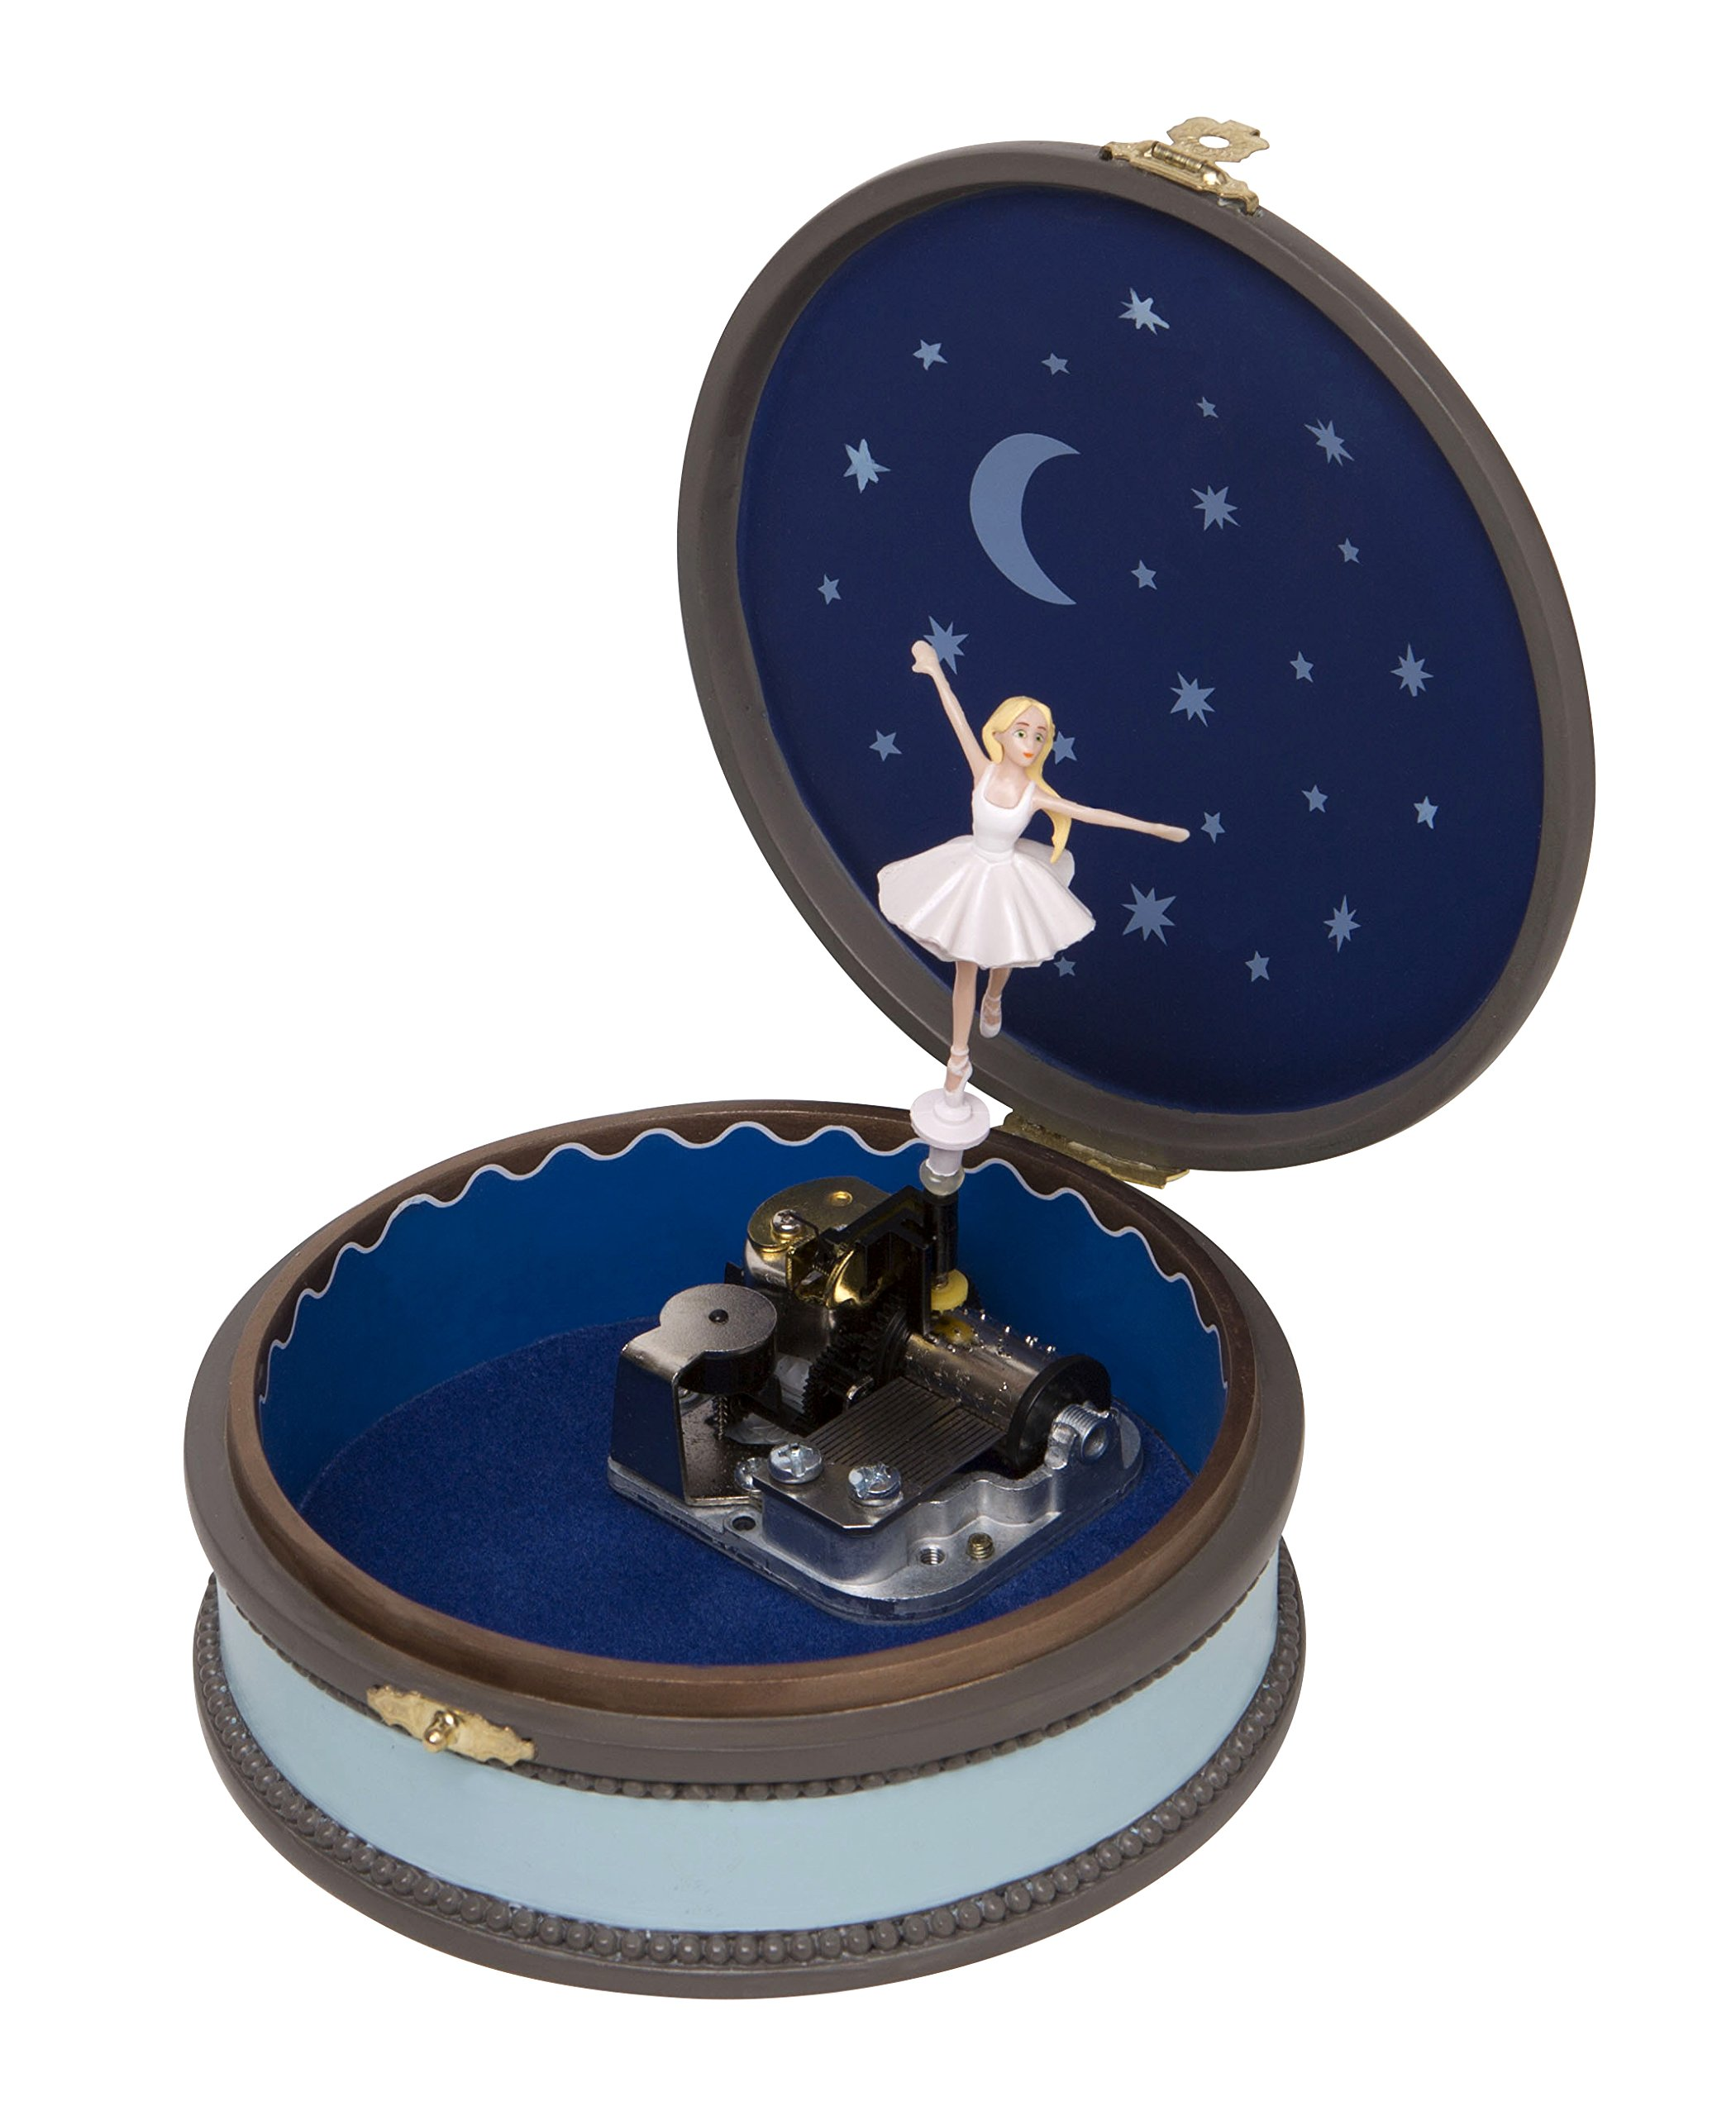 Trousselier - Ballerina - Leap Movie - Collector Music Box - Blue by Trousselier